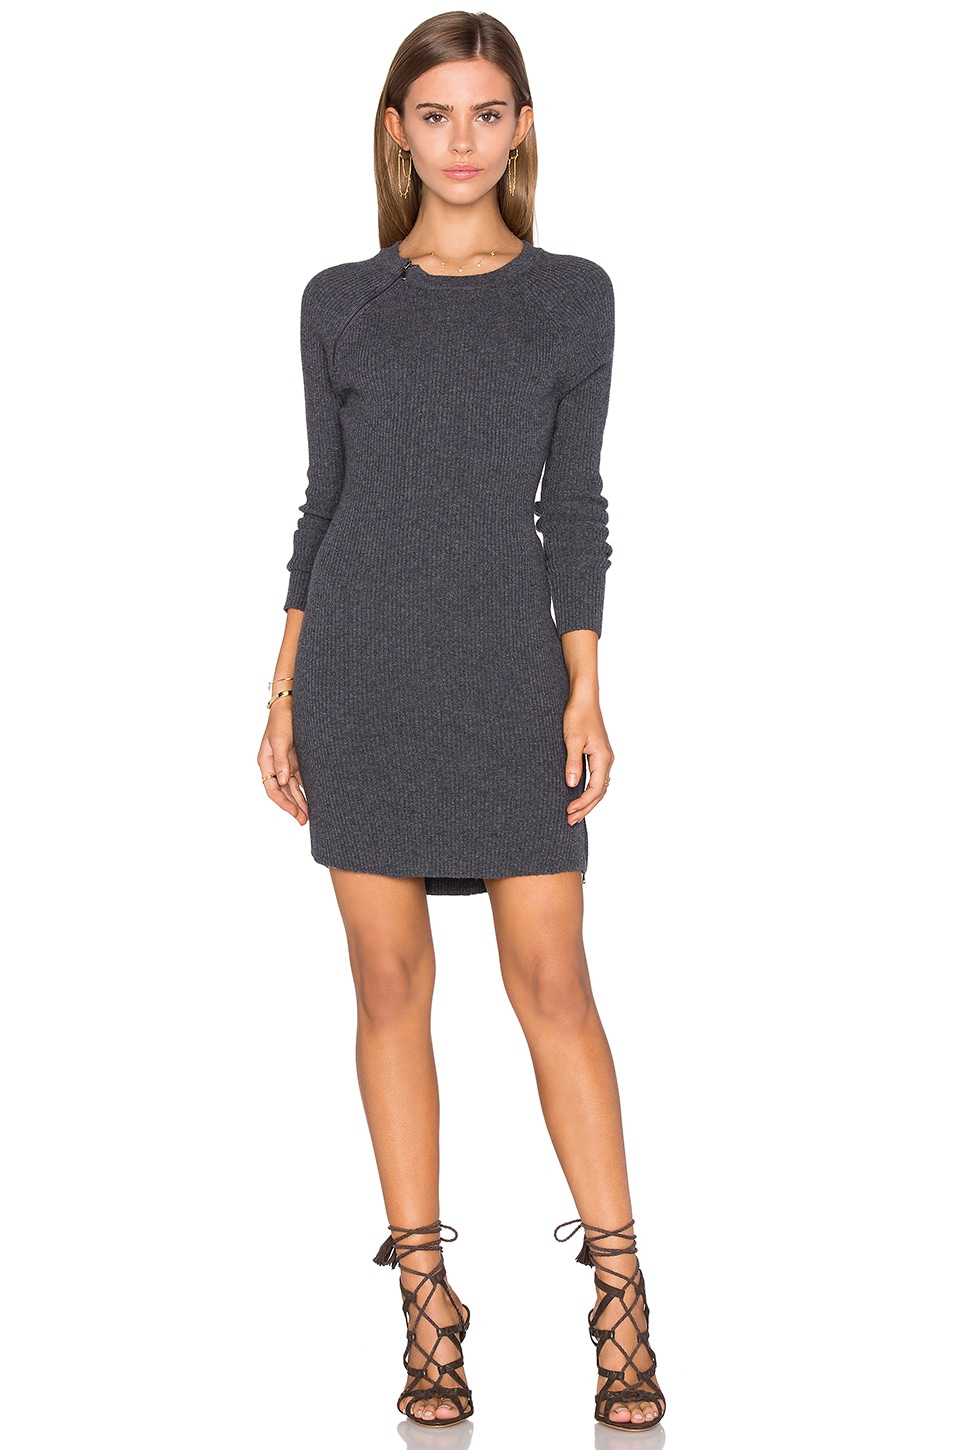 David Lerner Raglan Sweater Dress in Charcoal Heather